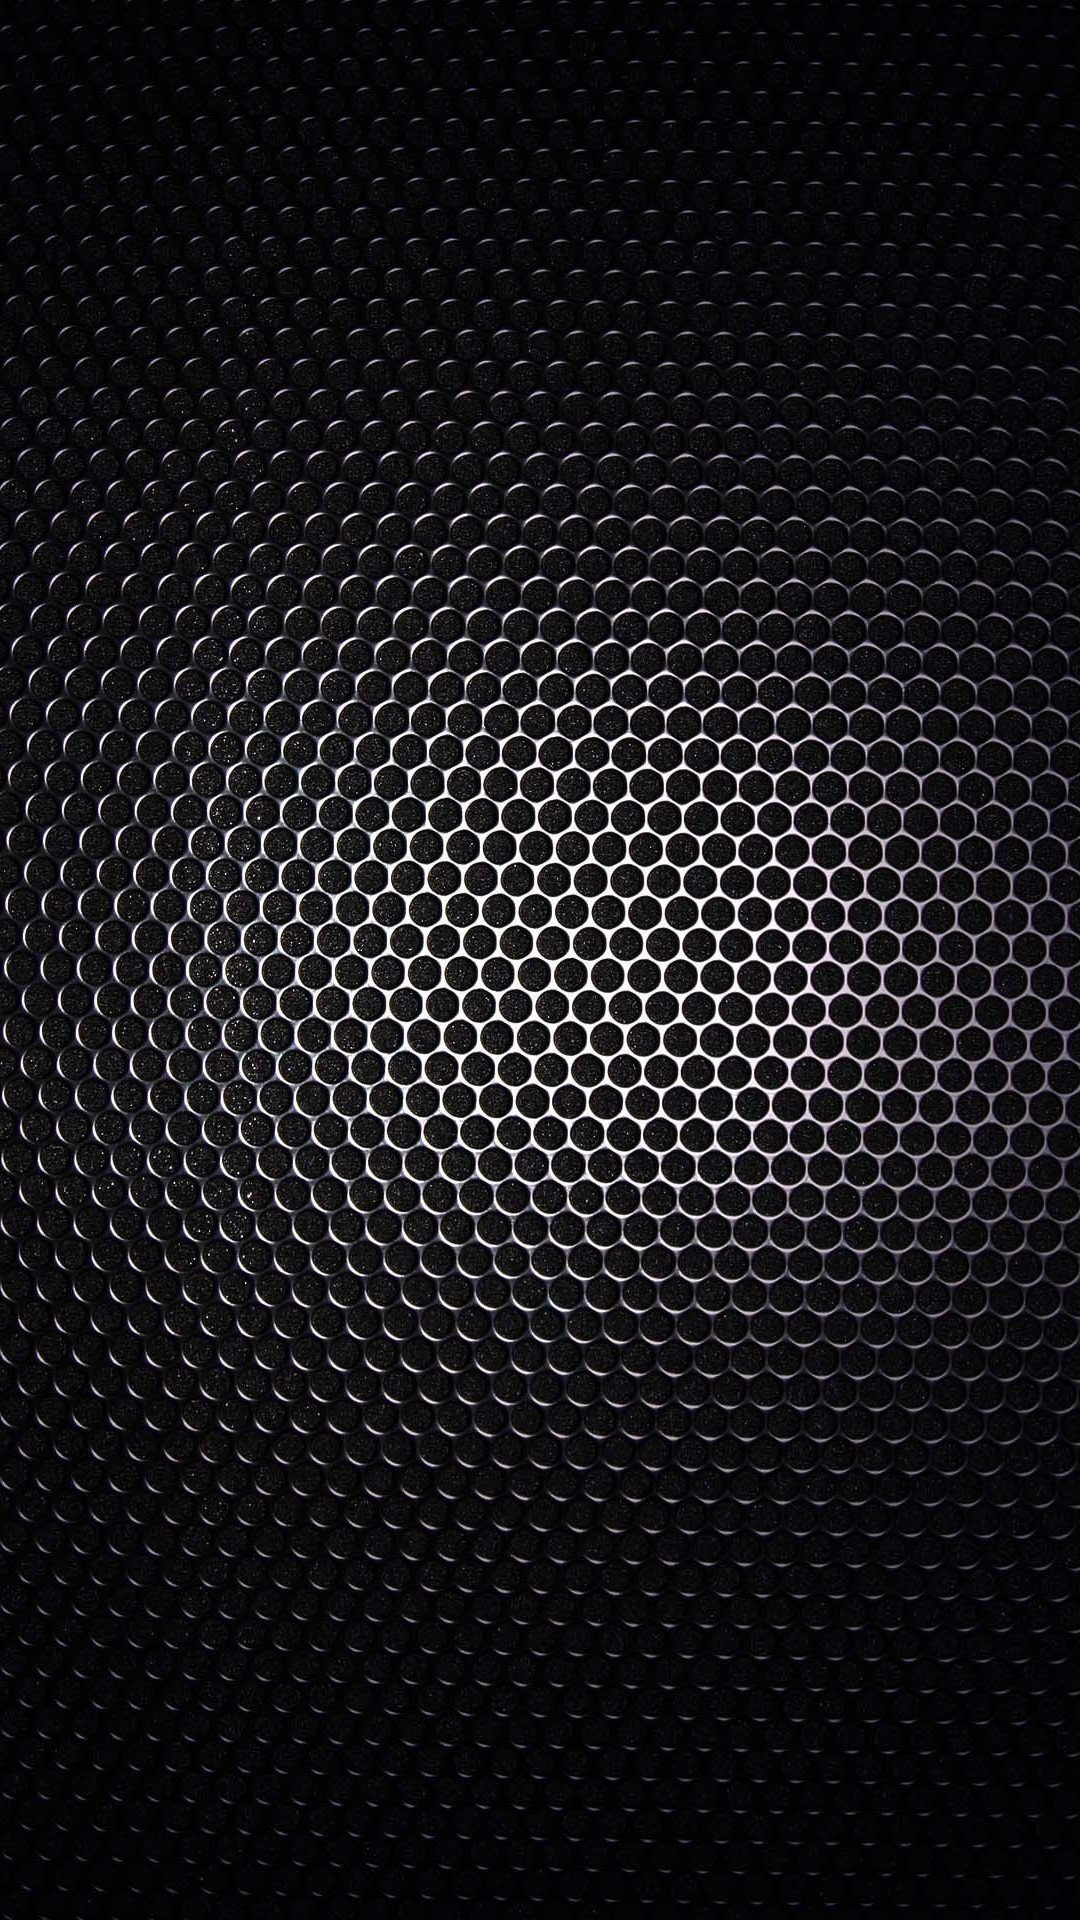 Galaxy S4 Wallpaper with Black metal grid design in resolution